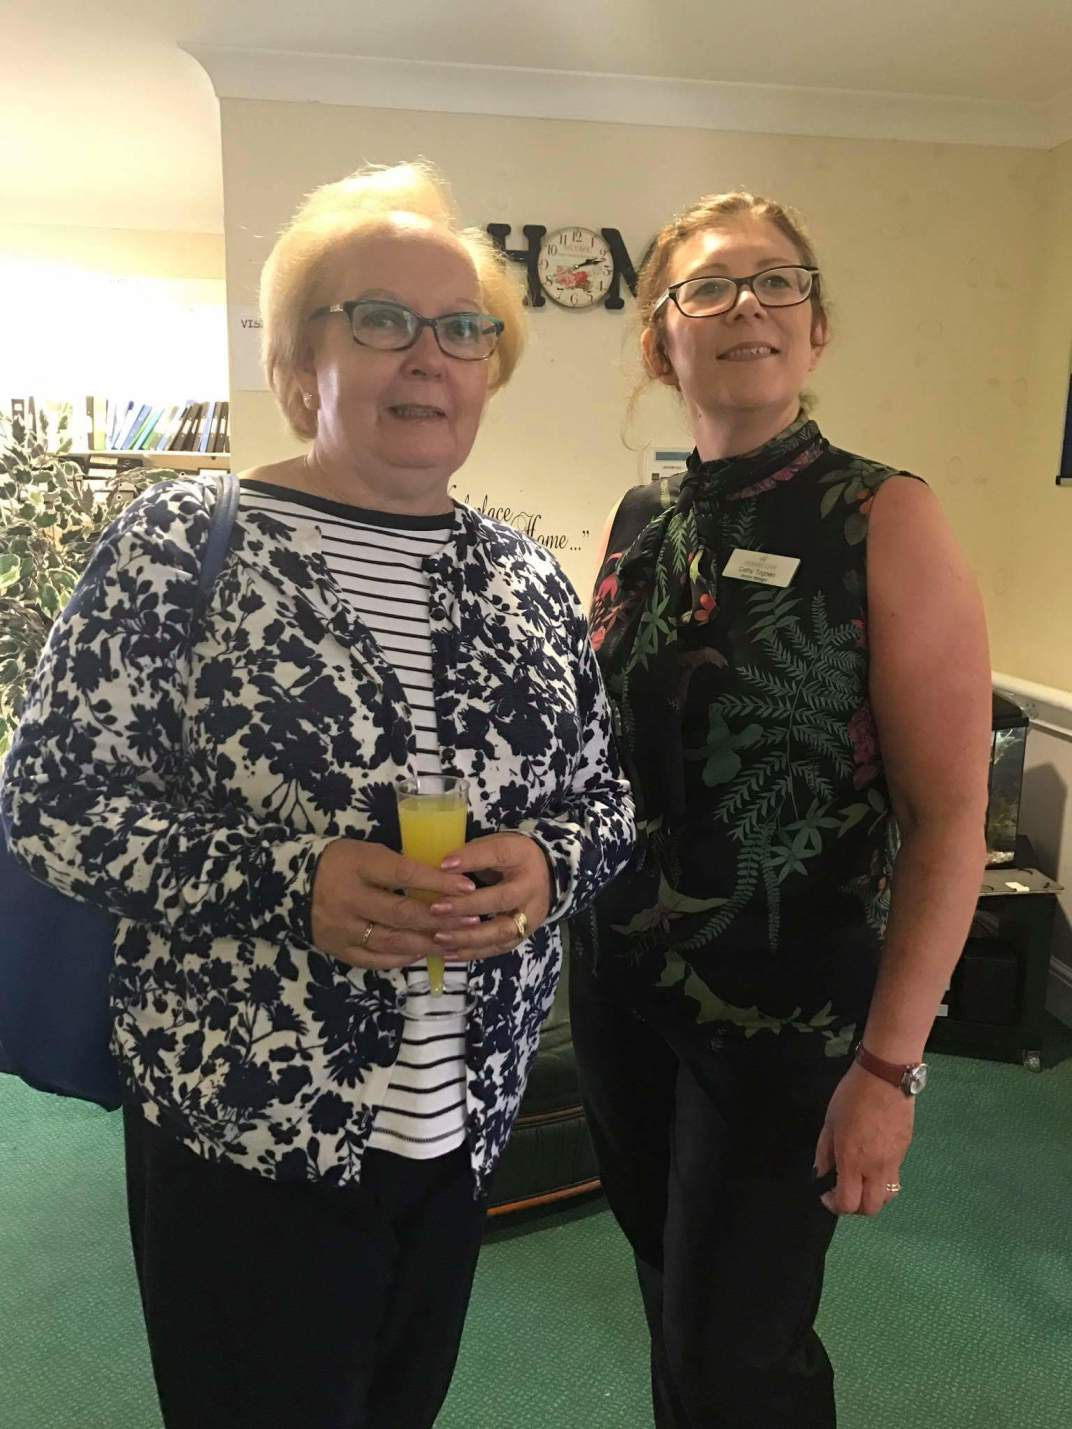 MP Marion Fellows and Manager of Beechwood Care Home, Cathy Togneri